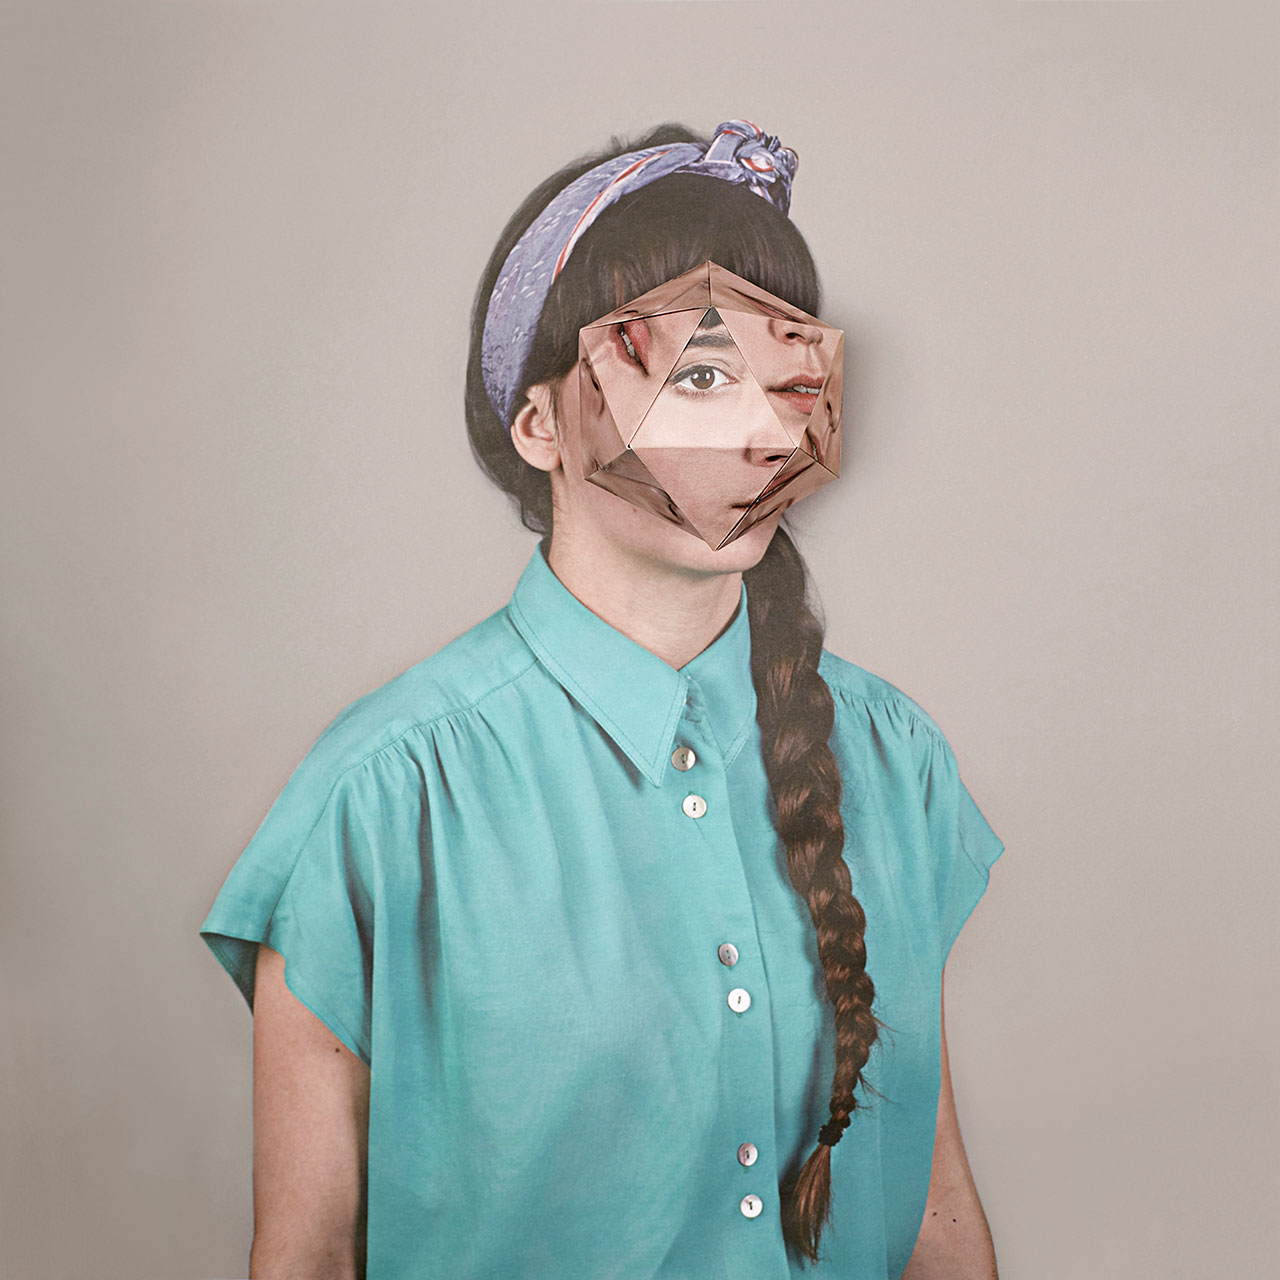 Alma Haser, Patient 27 from Cosmic Surgery series © Alma Haser.